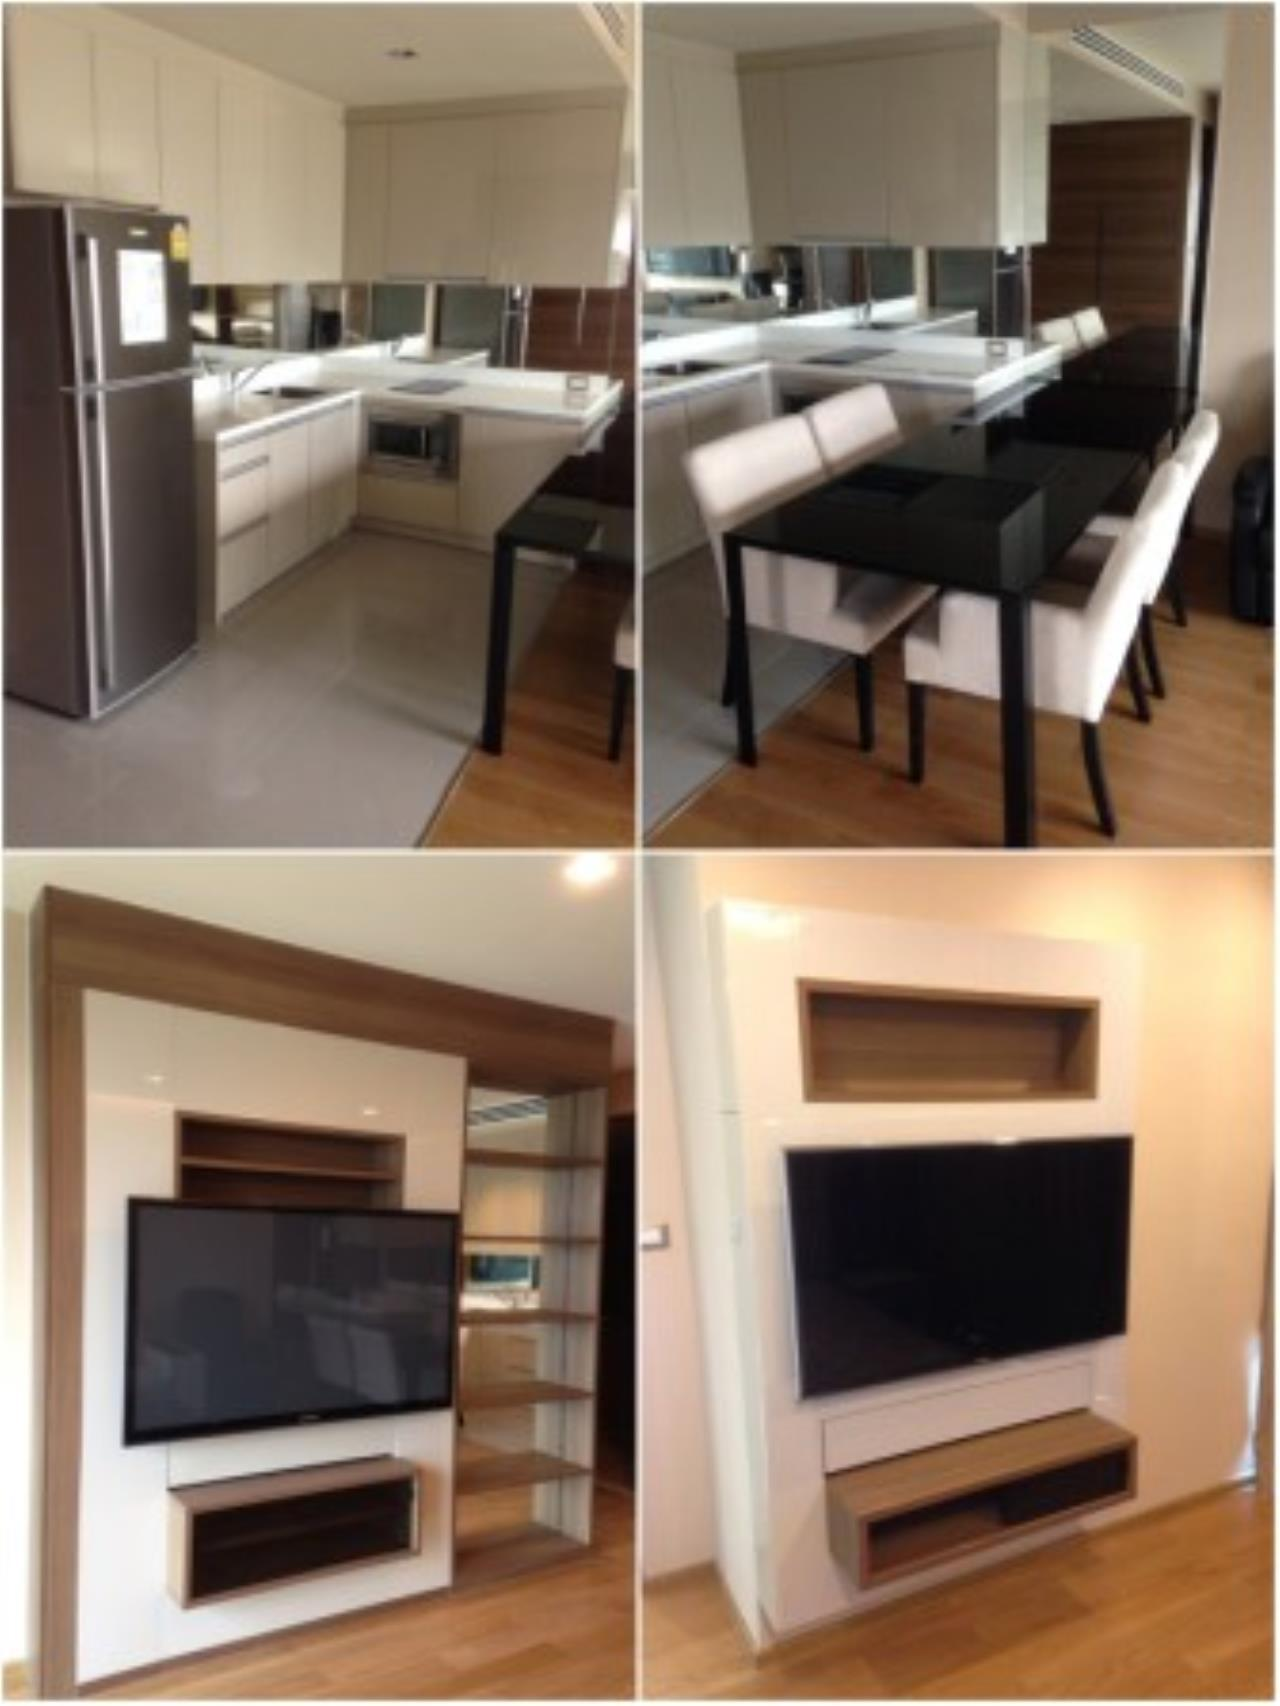 BKK Condos Agency's Nice 2 bedroom condo for rent at The Address Sathorn 2